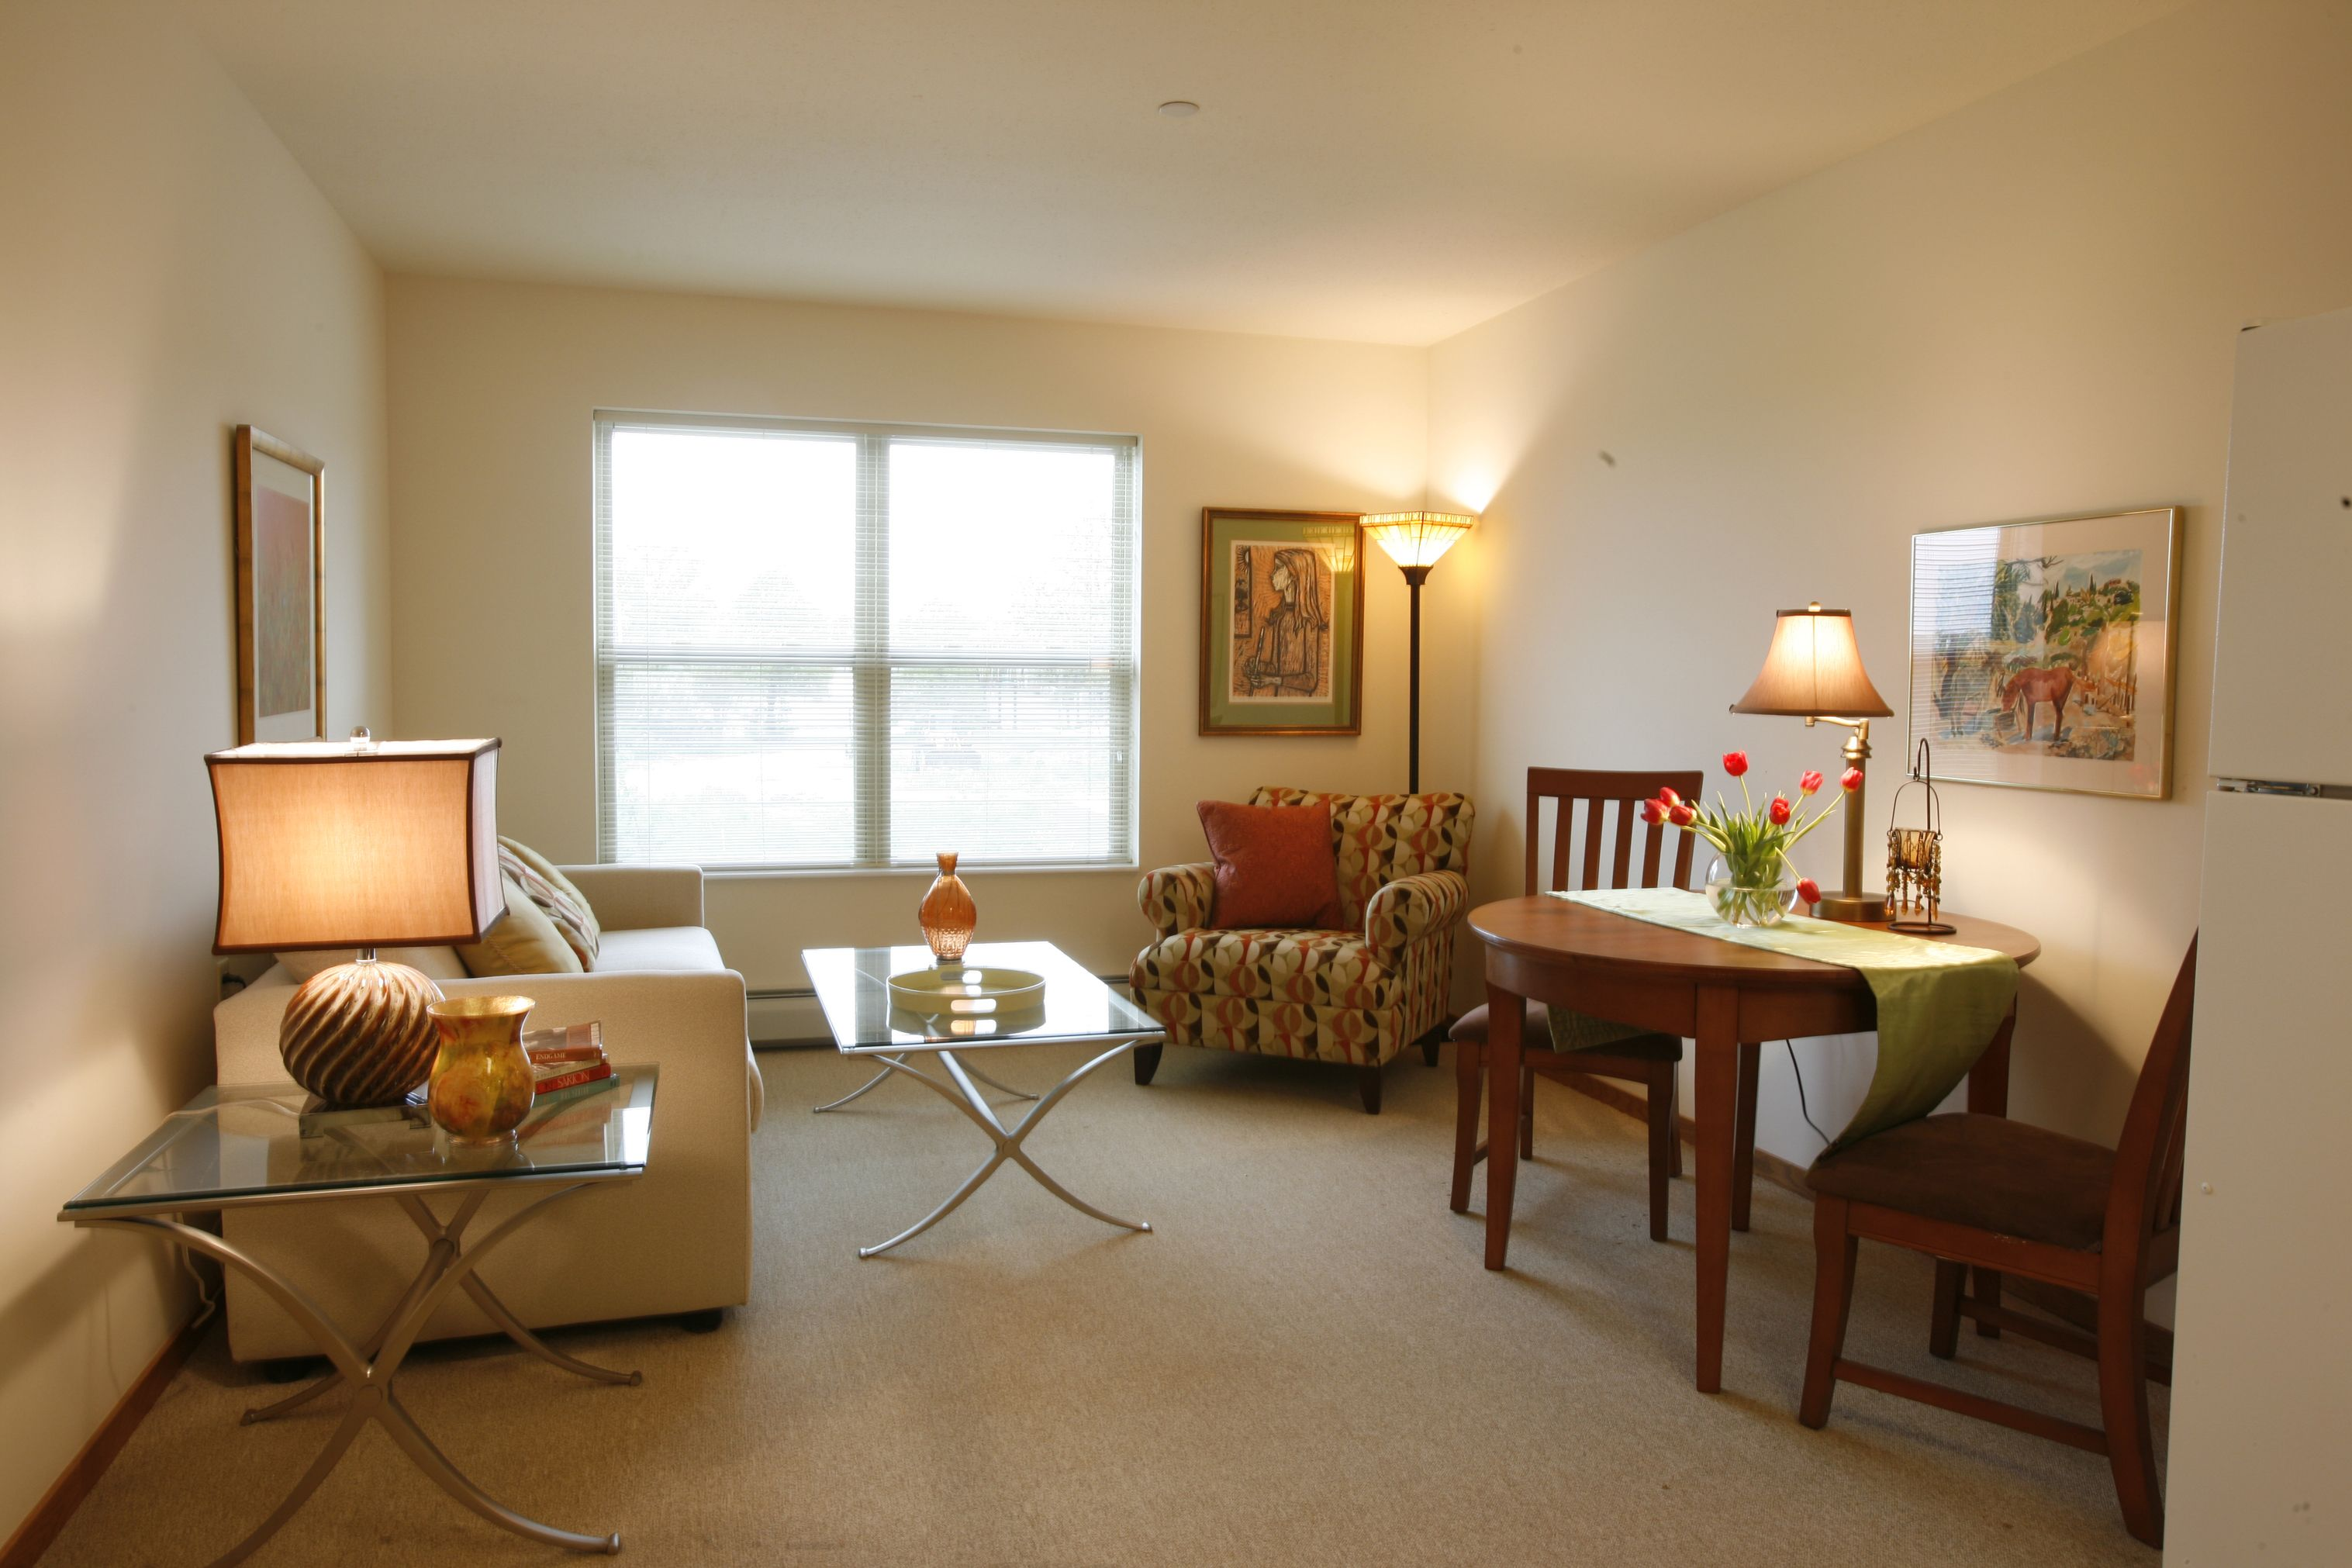 assisted living apartment models - google search | mom's house